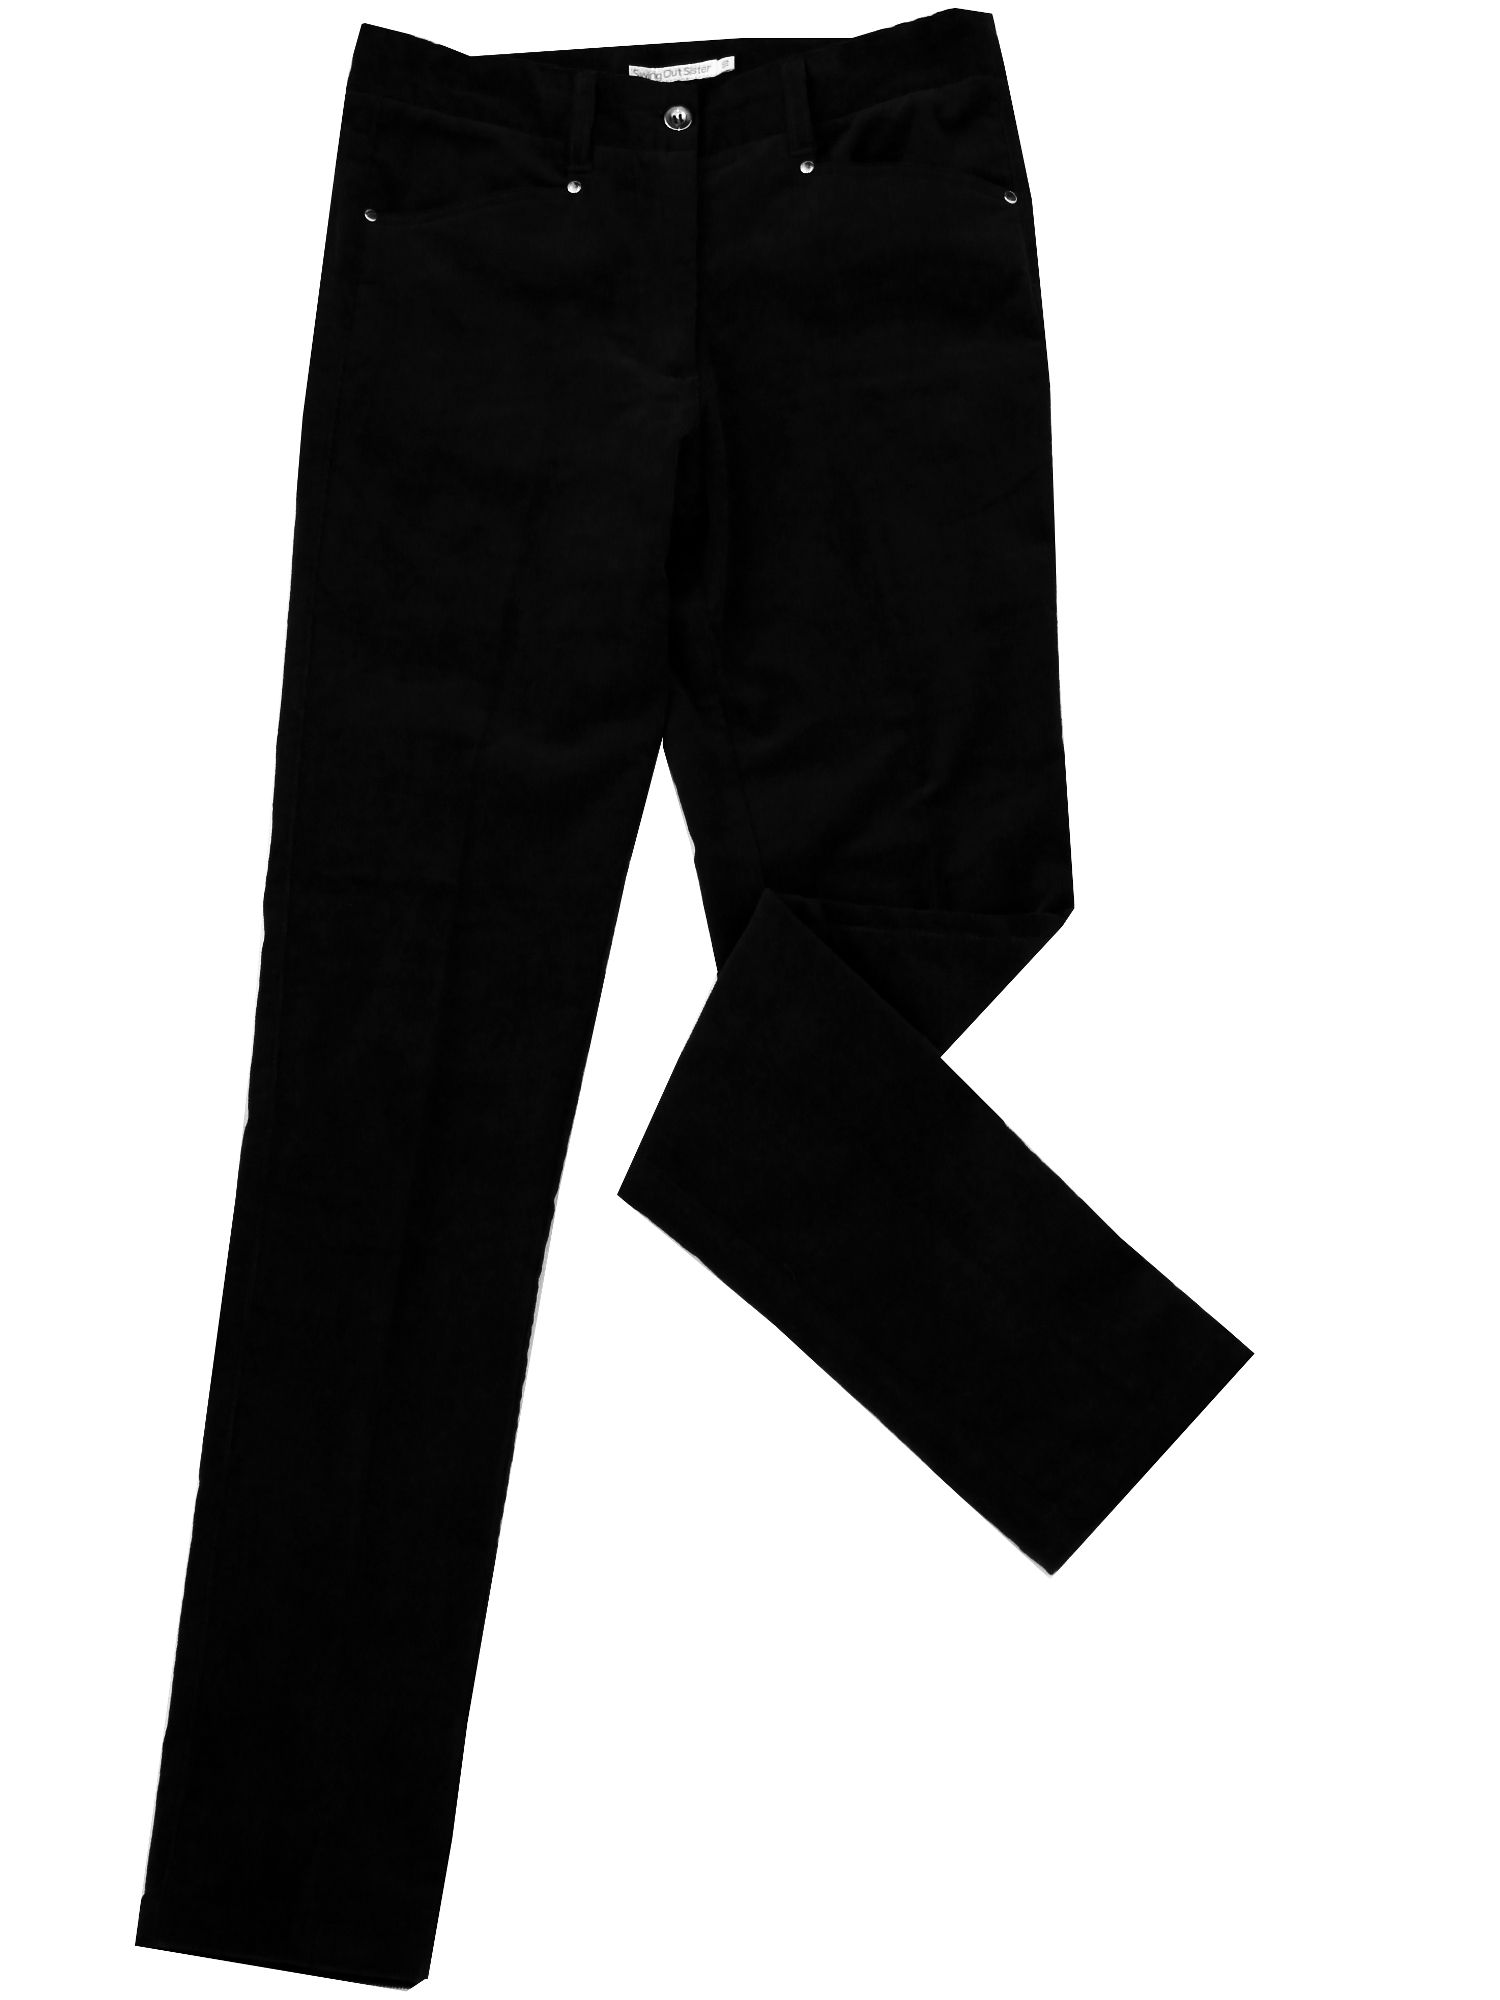 Swing Out Sister Swing Out Sister Clarity Cords, Black